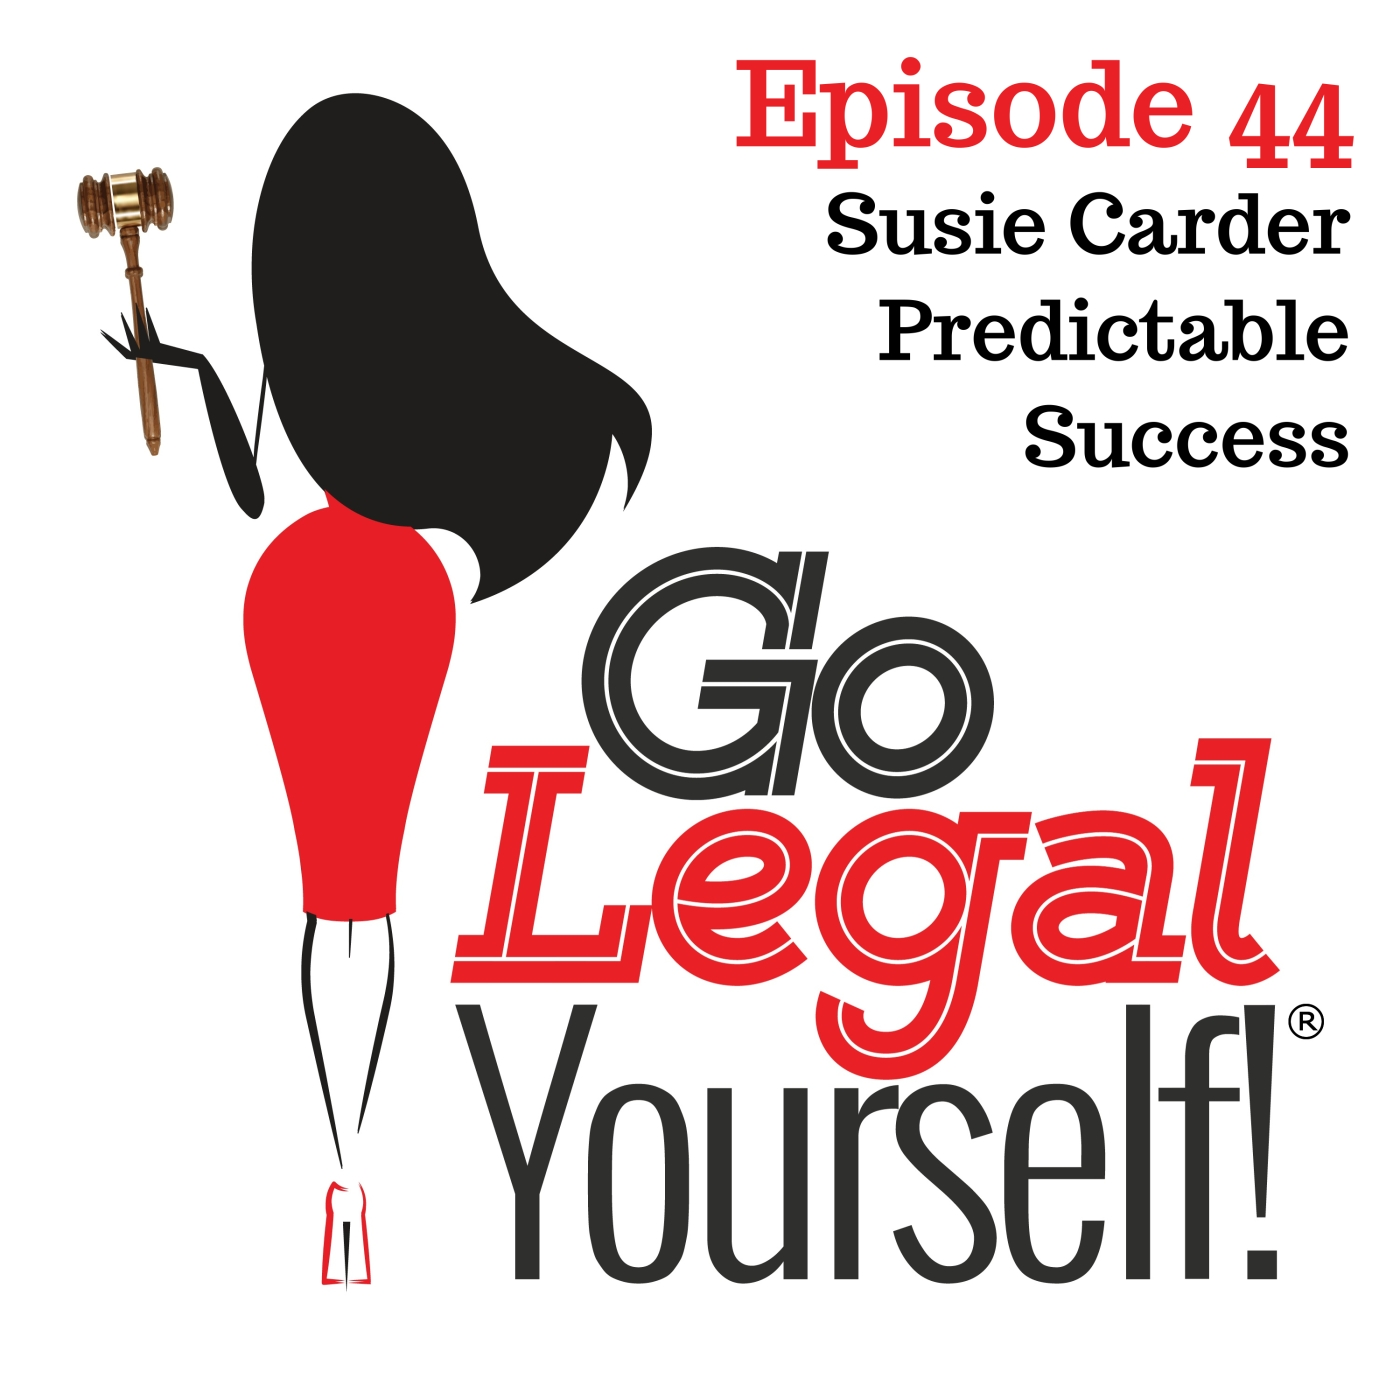 Ep. 44 Susie Carder: Predictable Success